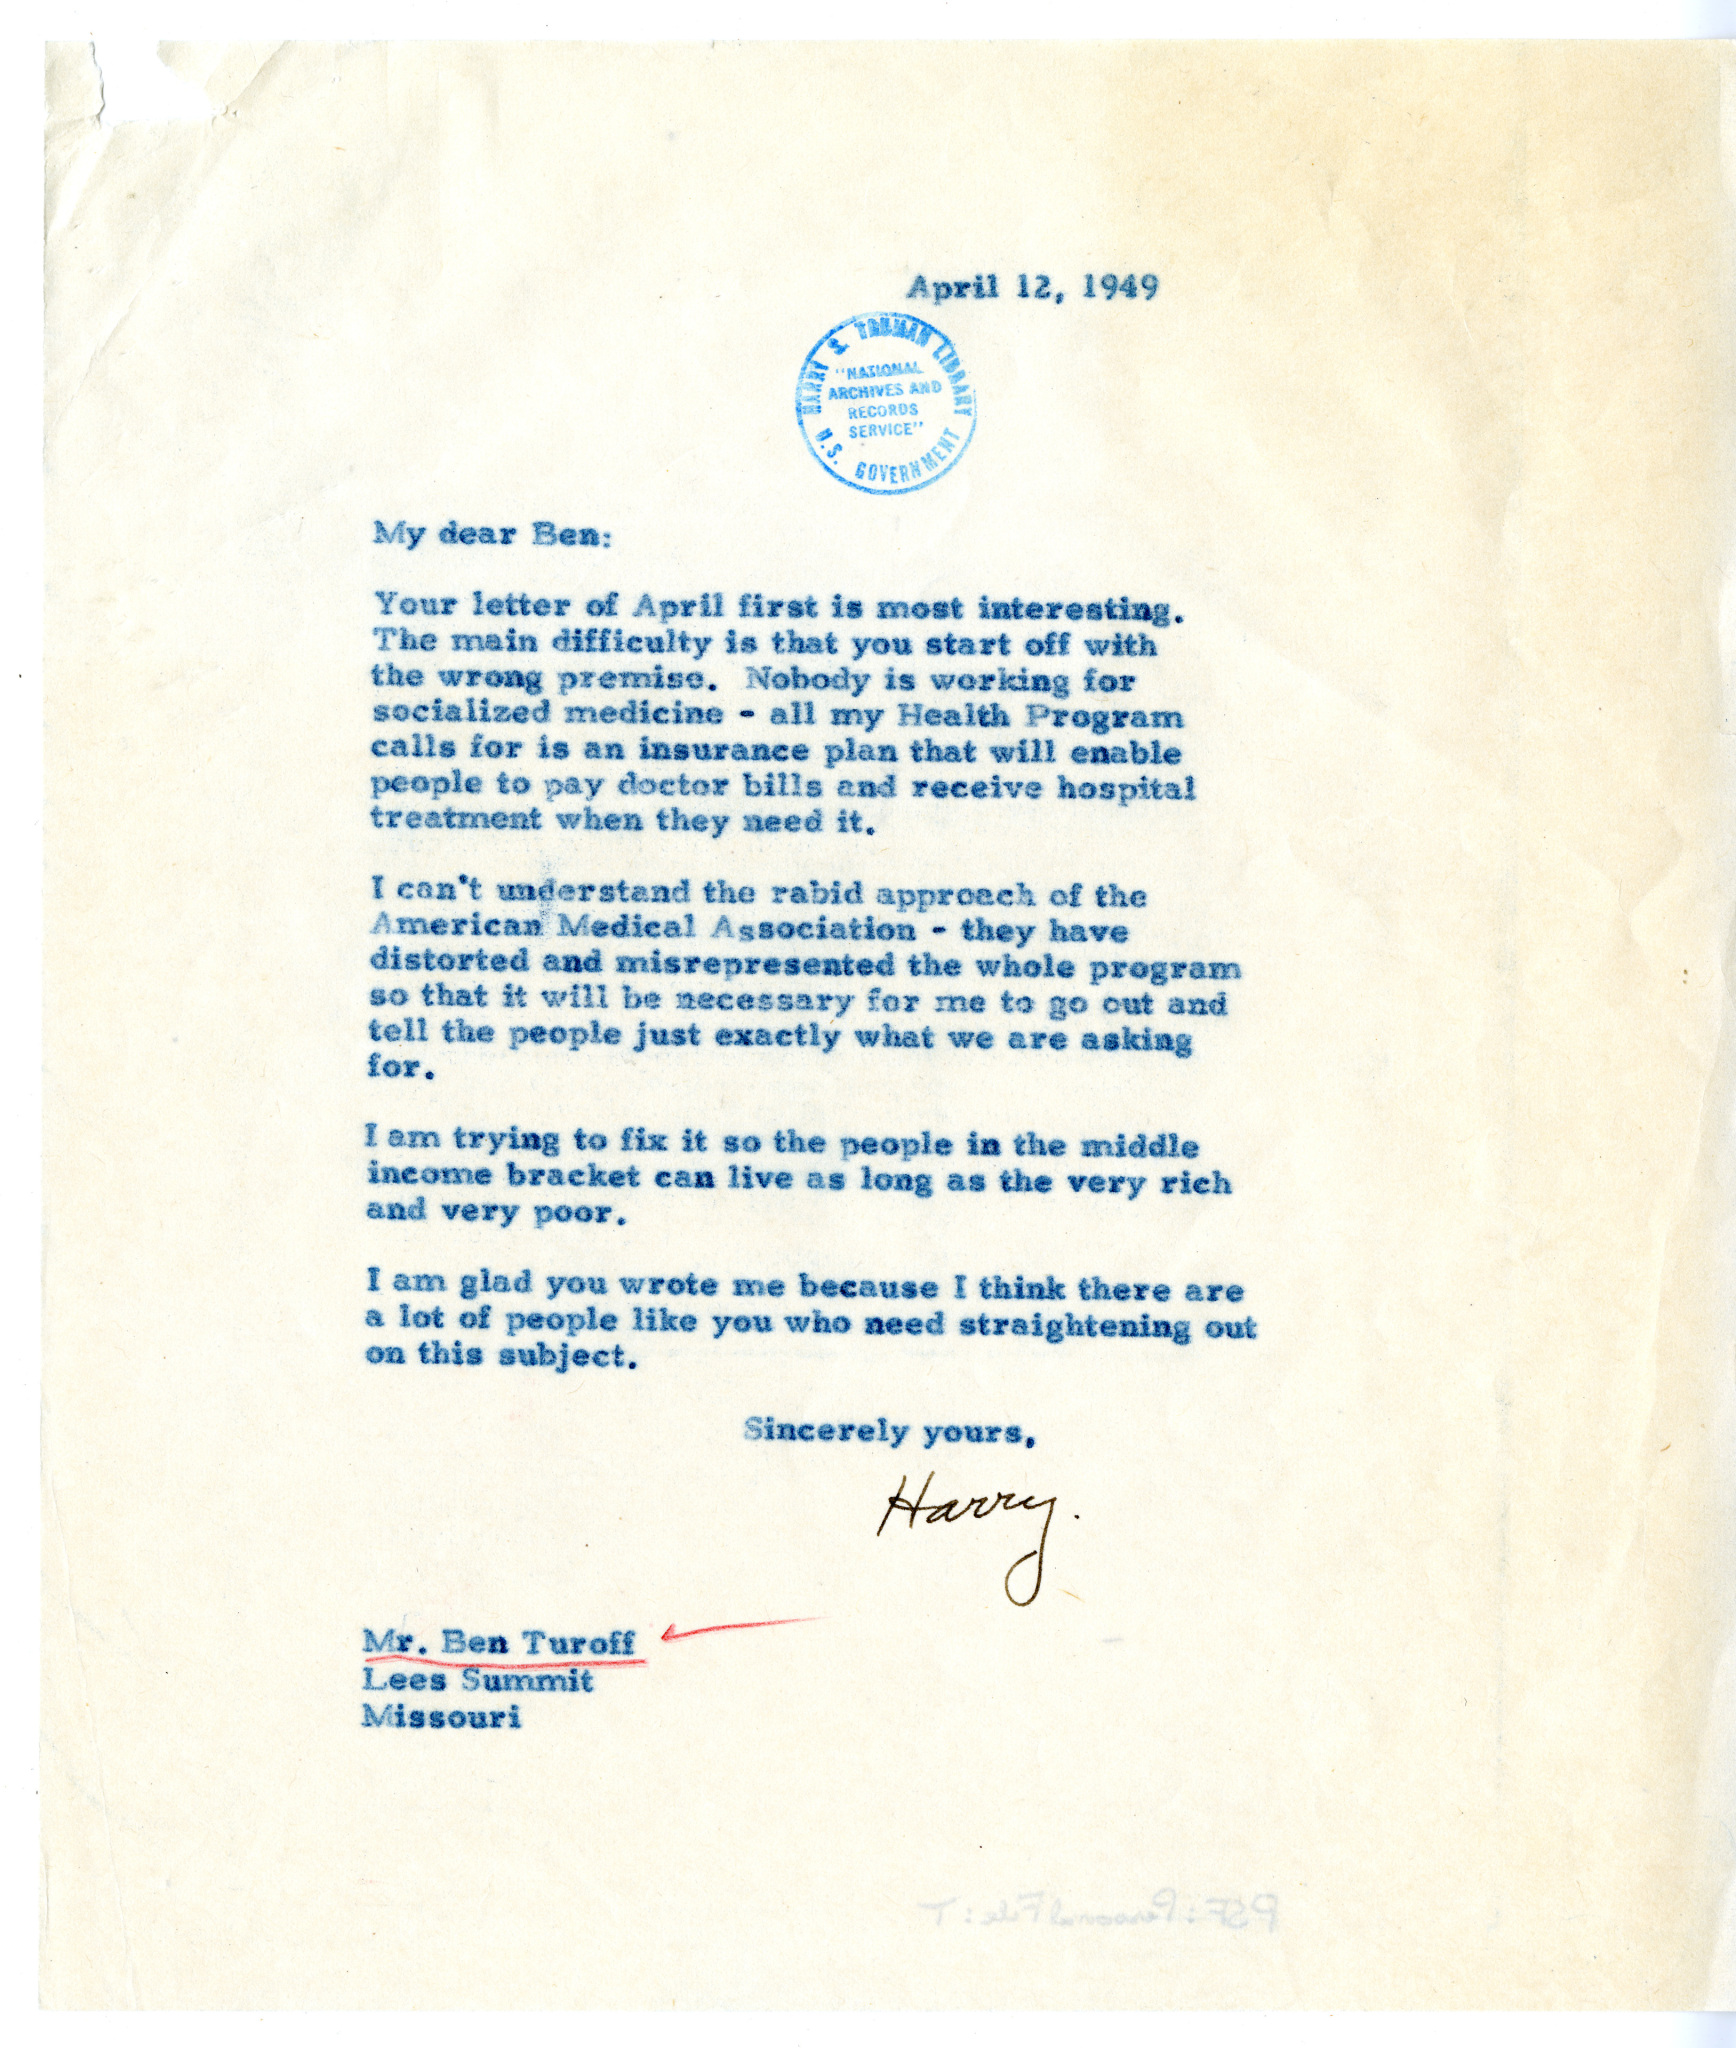 Letter from Harry S. Truman on health care